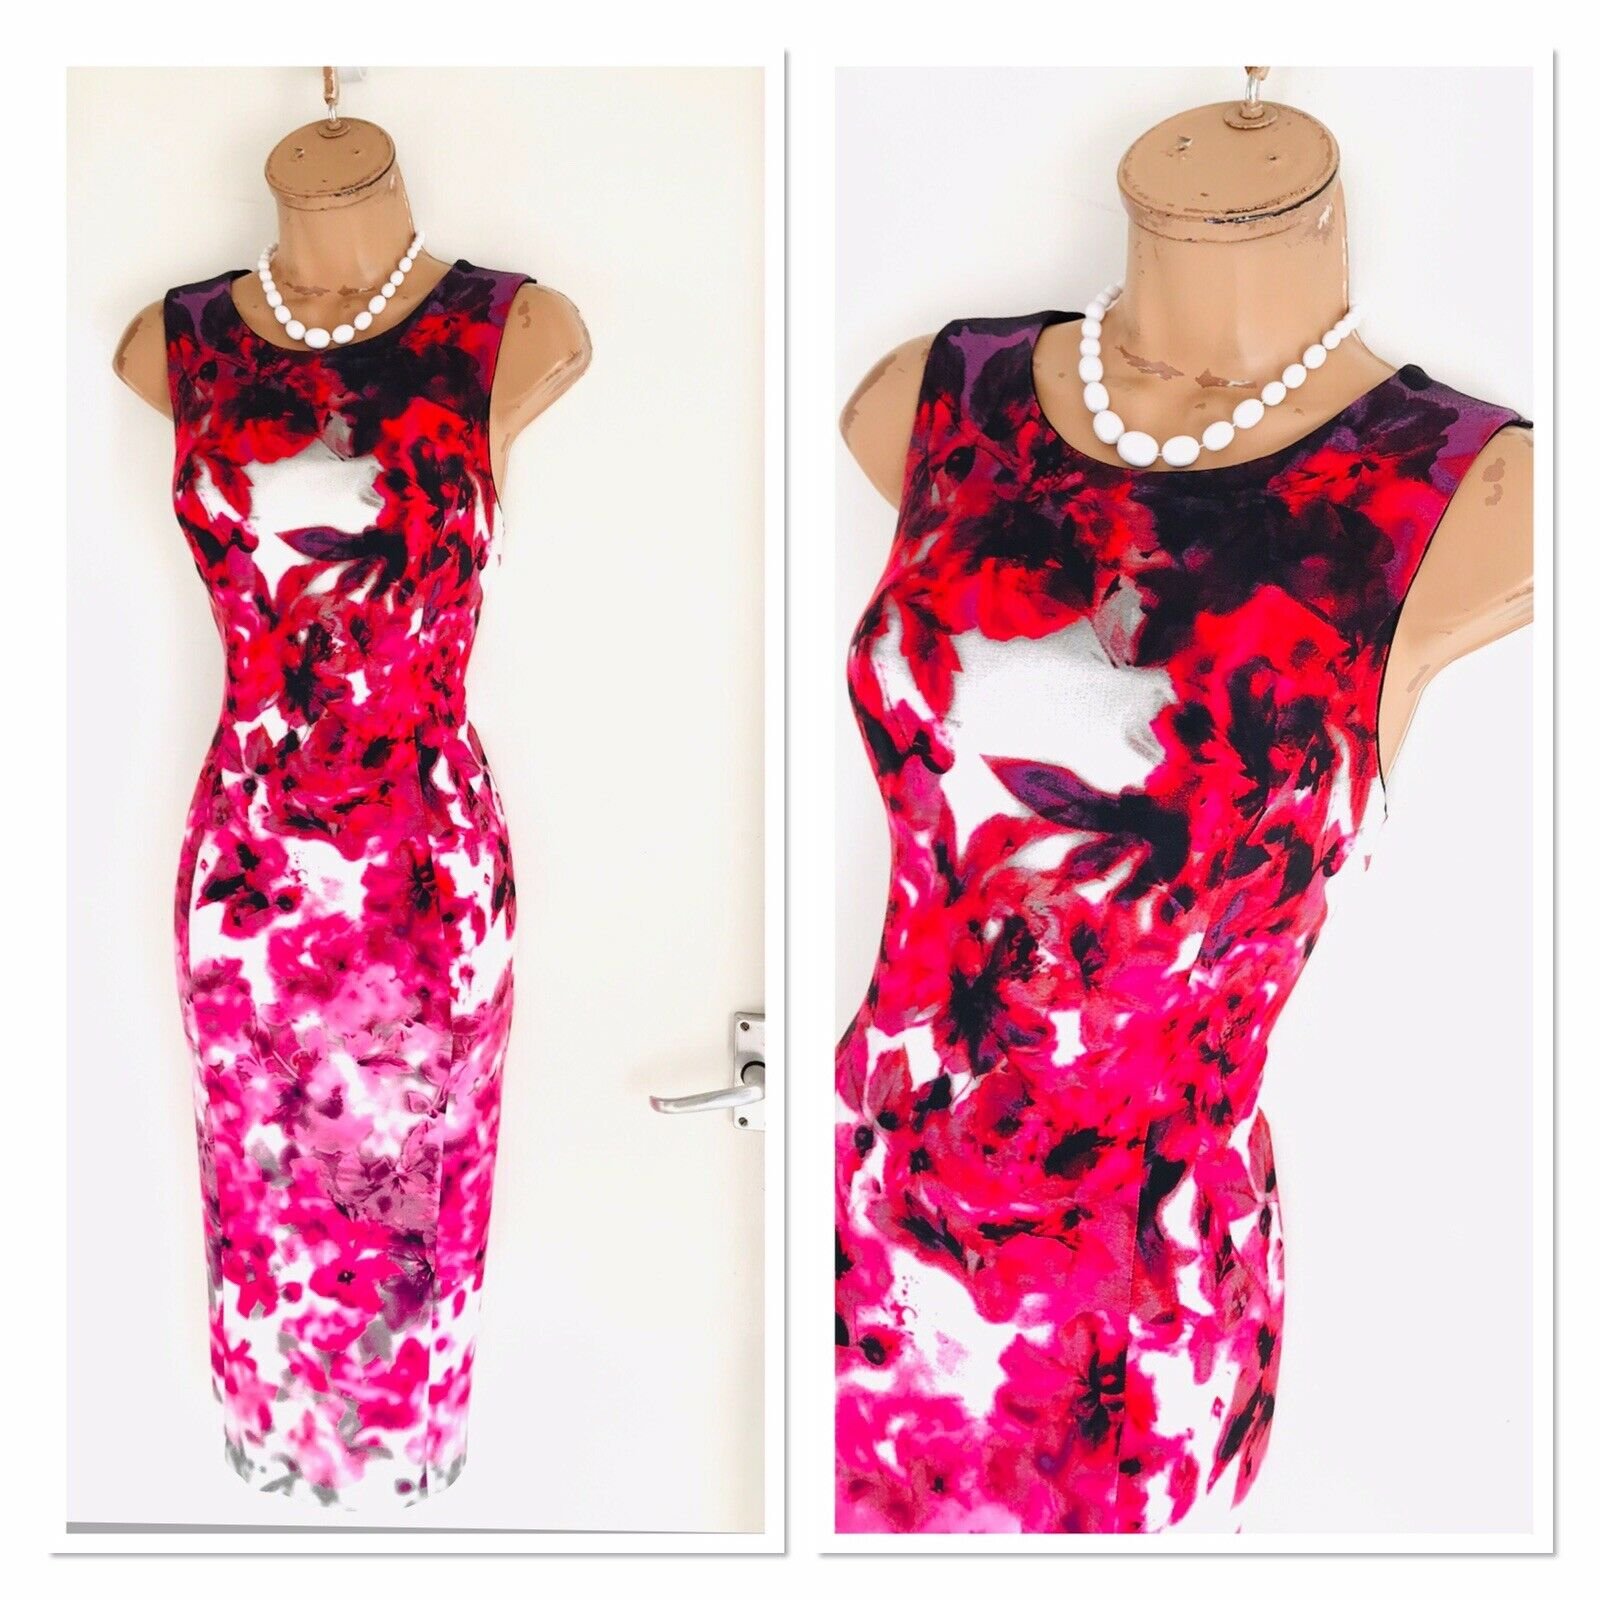 Stunning JOSEPH RIBKOFF Colourful Floral Stretch Bodycon Dress Uk Größe Größe Größe 10 e340bf